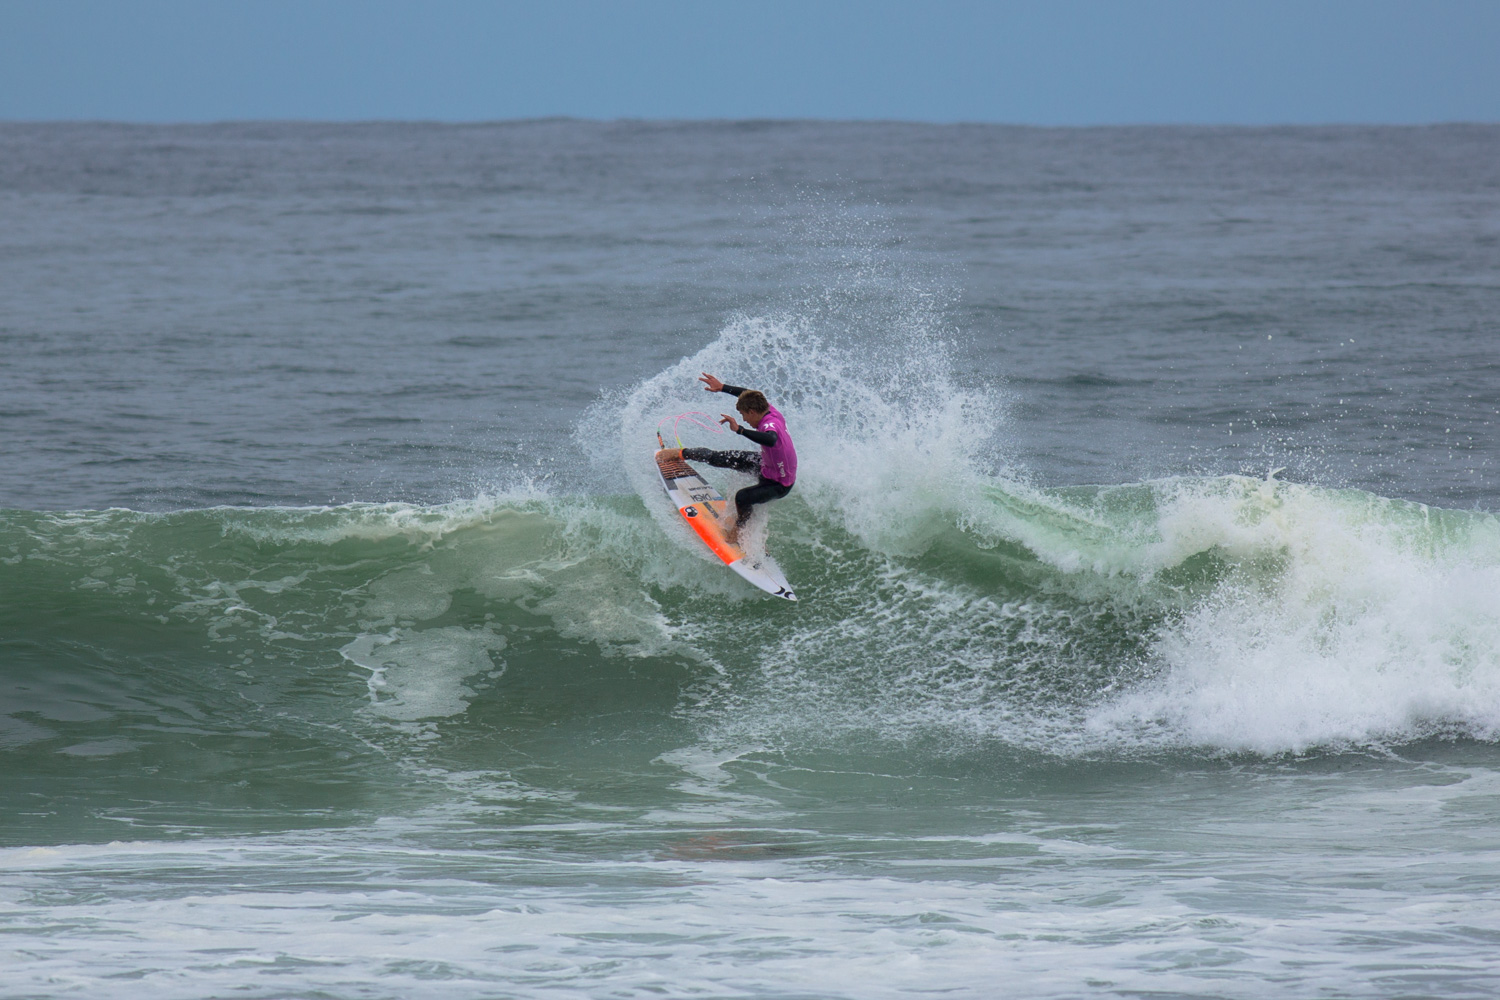 Matt McGillivray surf action it the Hurley SA champs